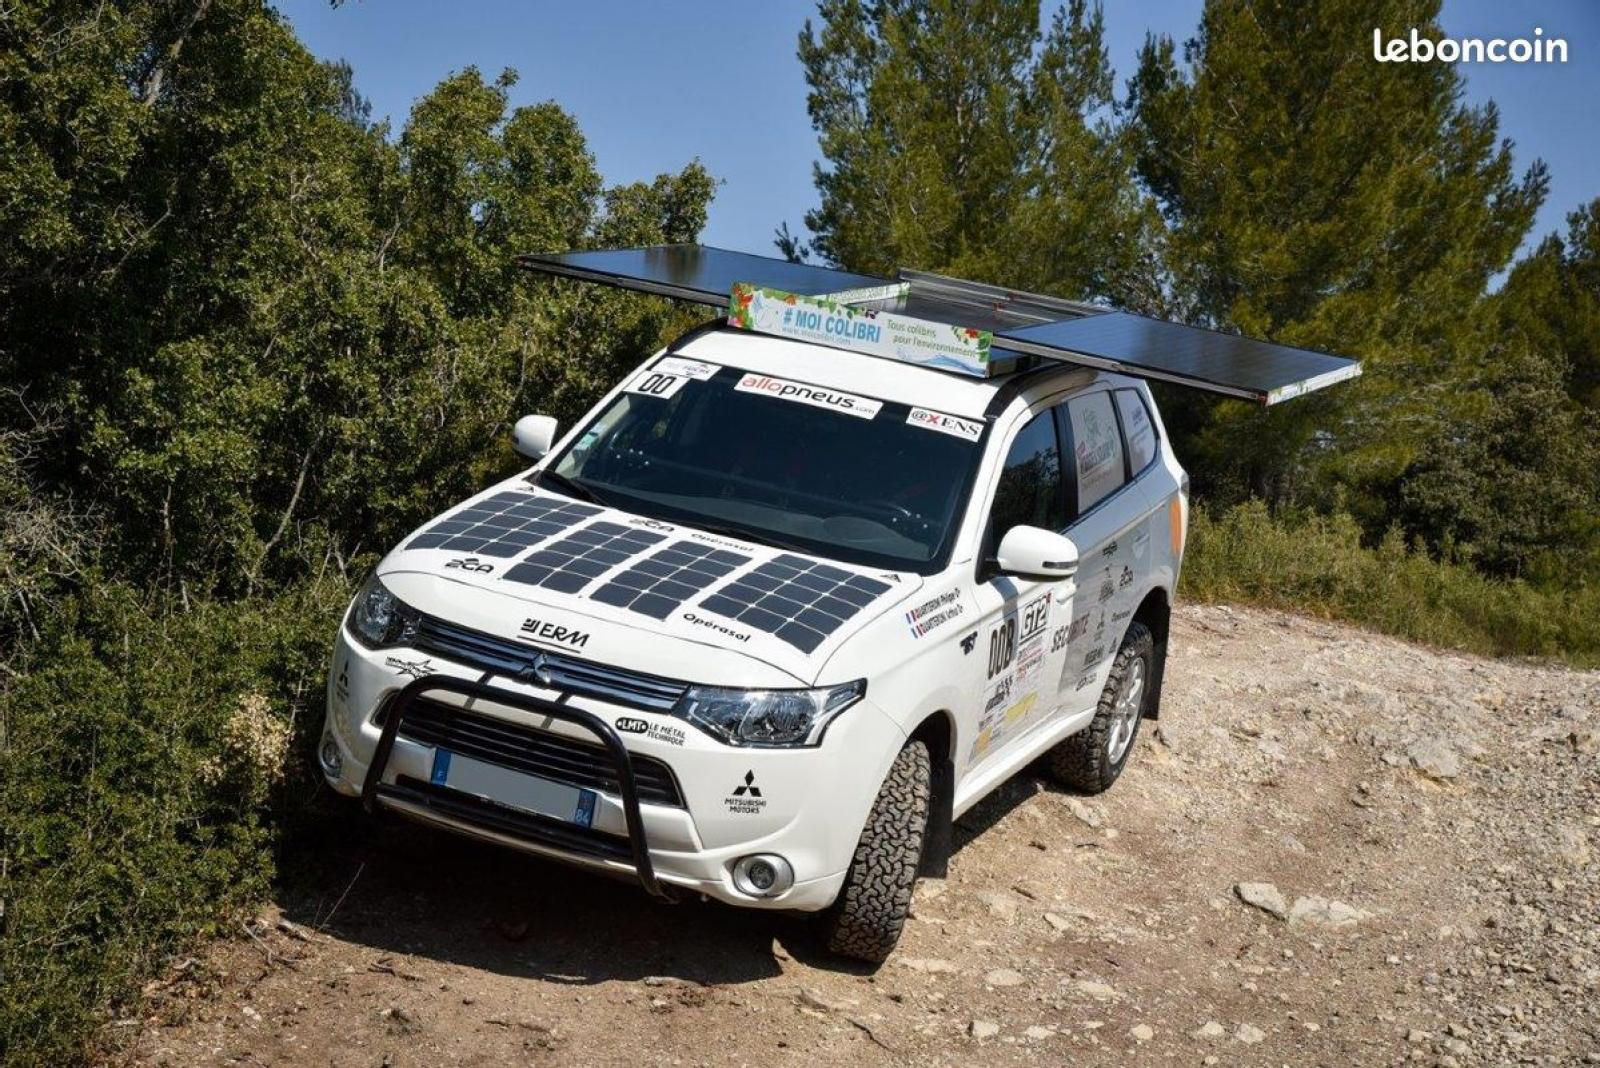 MITSUBISHI Outlander 4x4 PHEV Hybrid and Solar for Rally Orientation and Expedition - 3